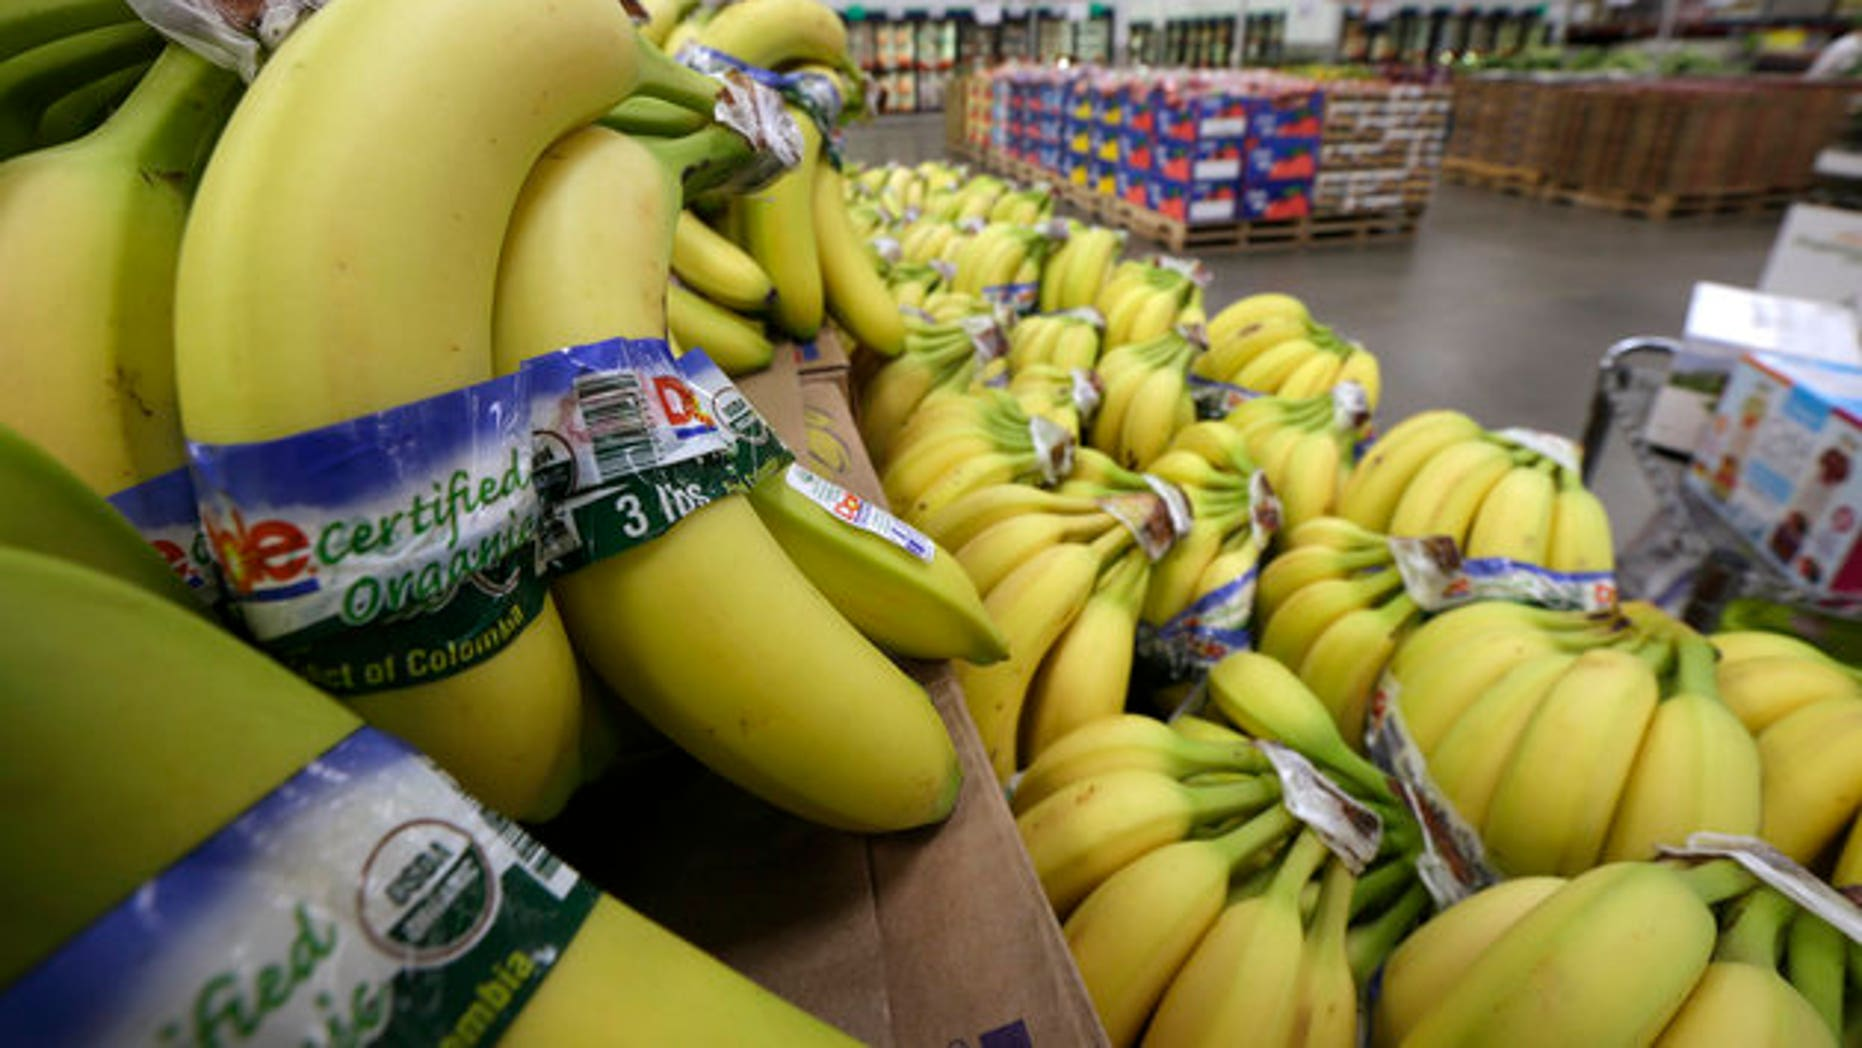 Cavendish bananas are the most popular variety in the U.S. But they are facing a deadly fungal disease compound.